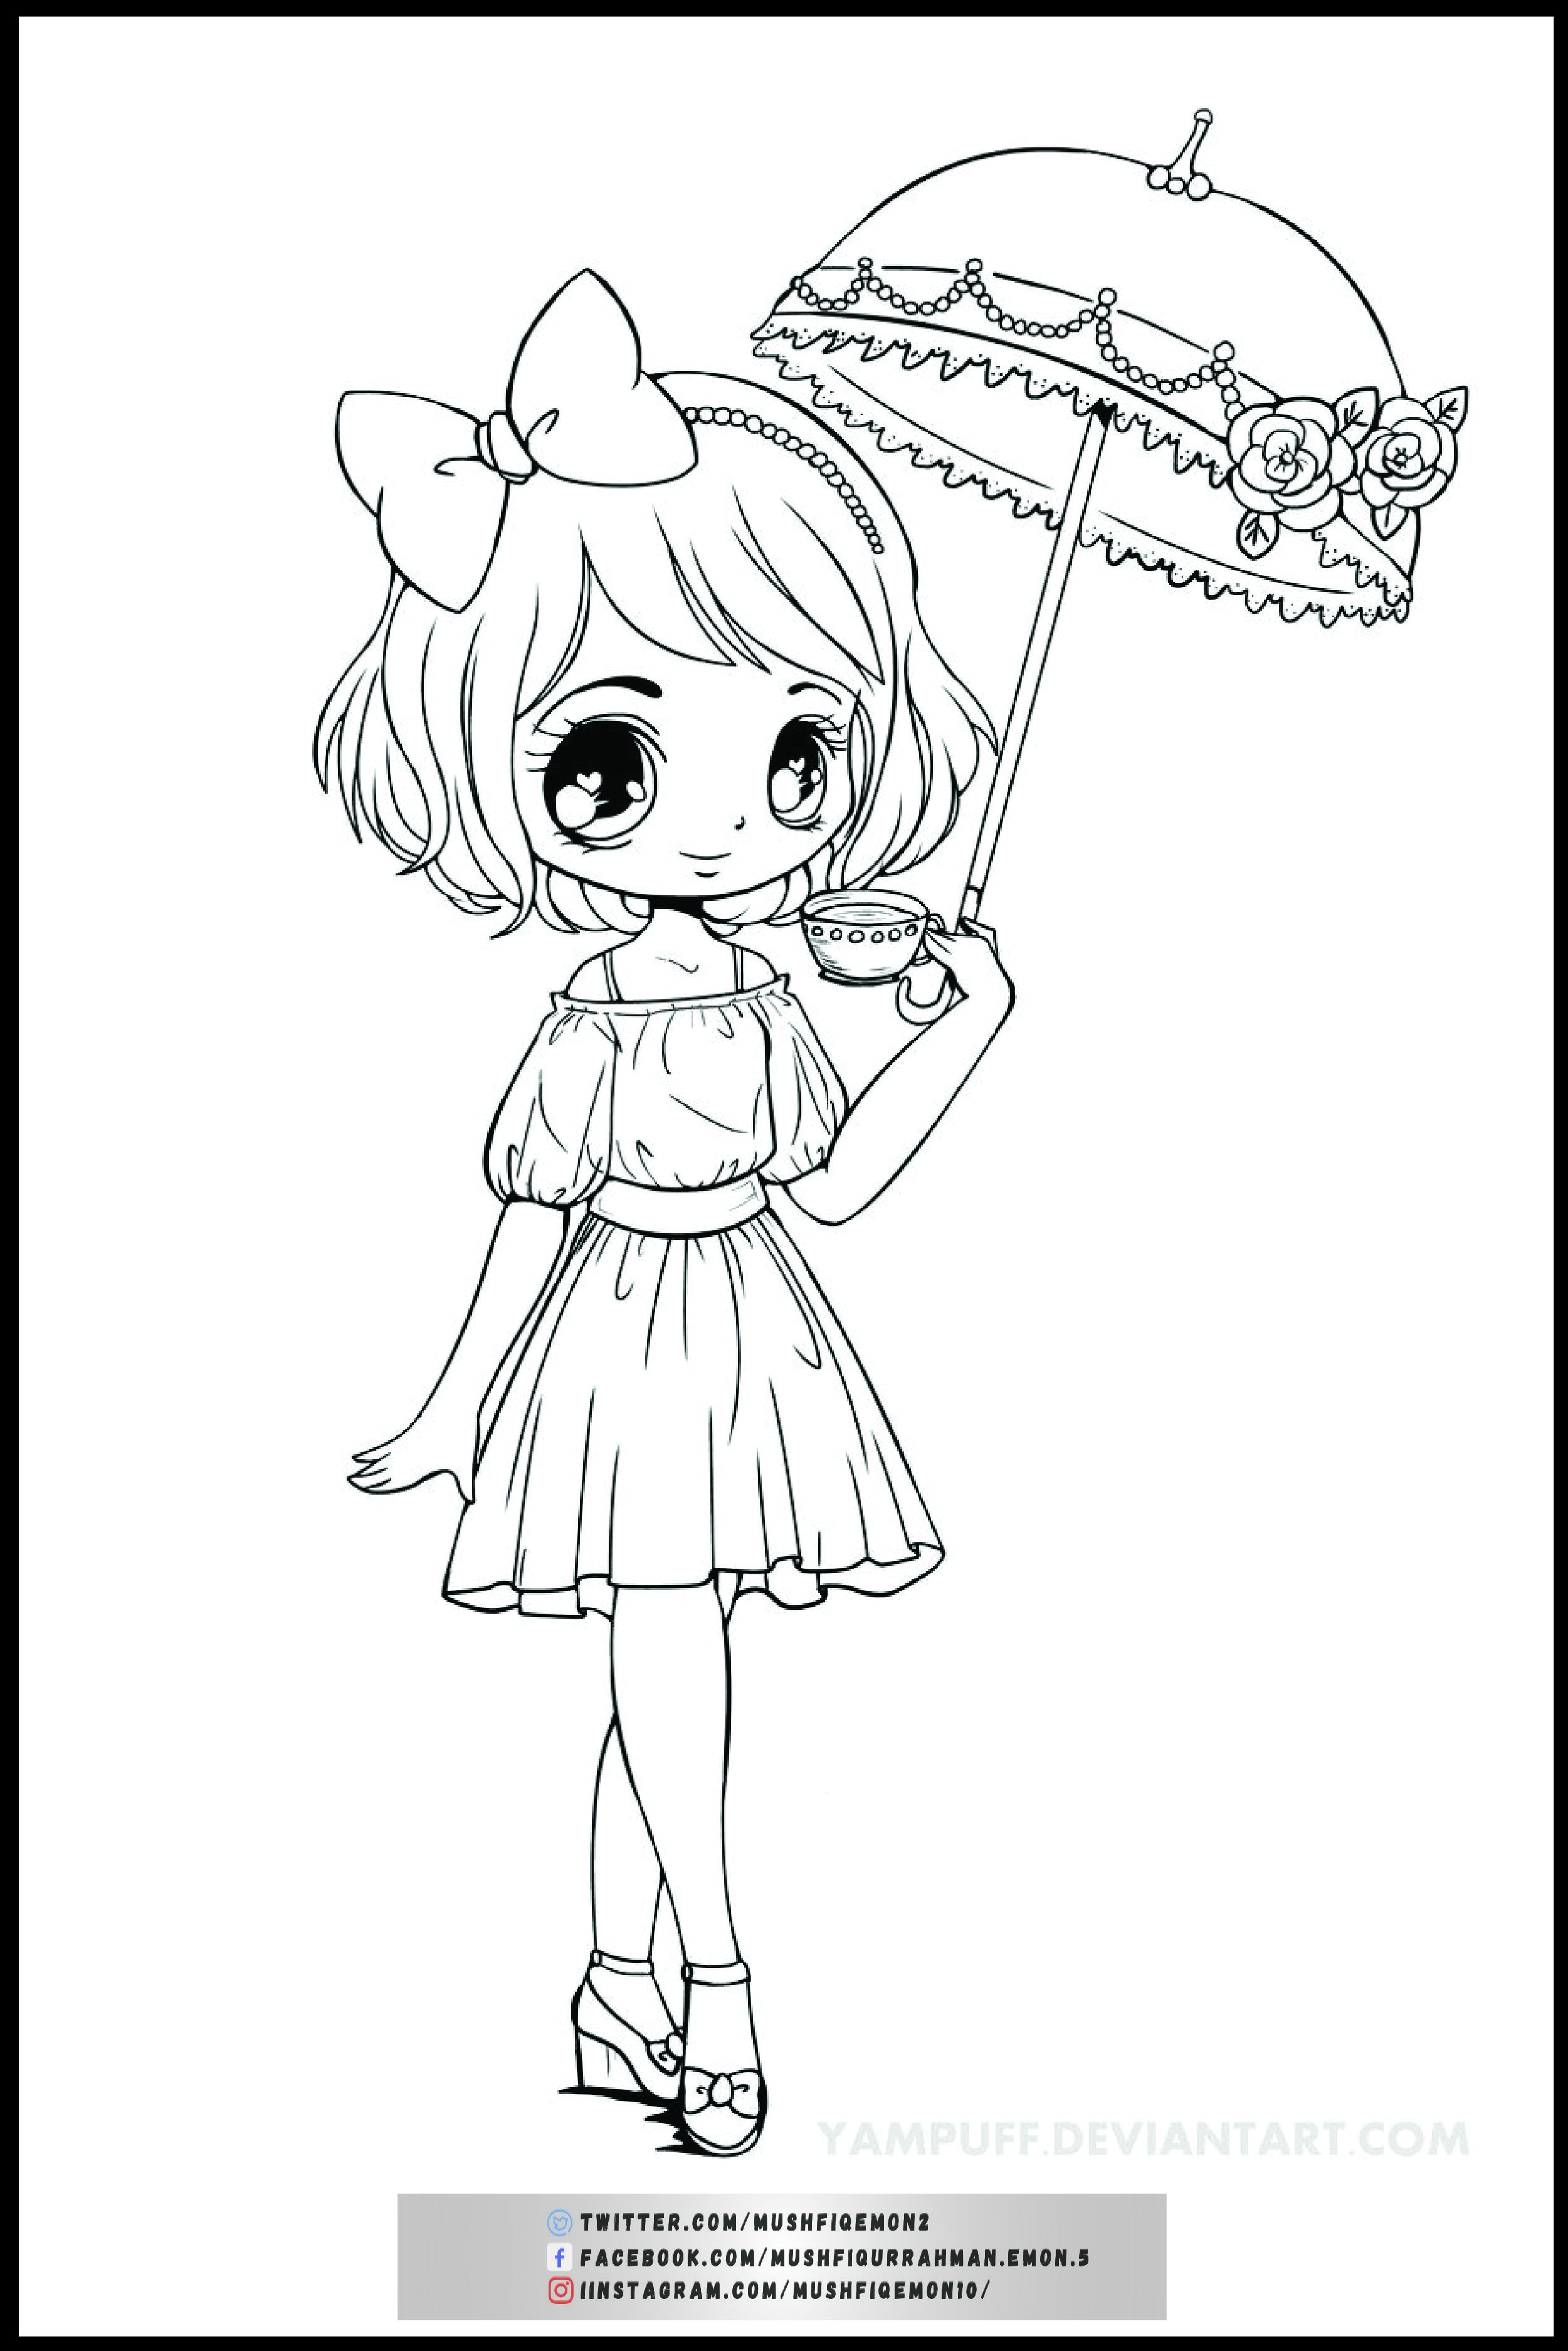 Mushfiqemon I Will Make Coloring Book Page For Kids And Adults For 5 On Fiverr Com In 2021 Chibi Coloring Pages Cute Coloring Pages Coloring Pages